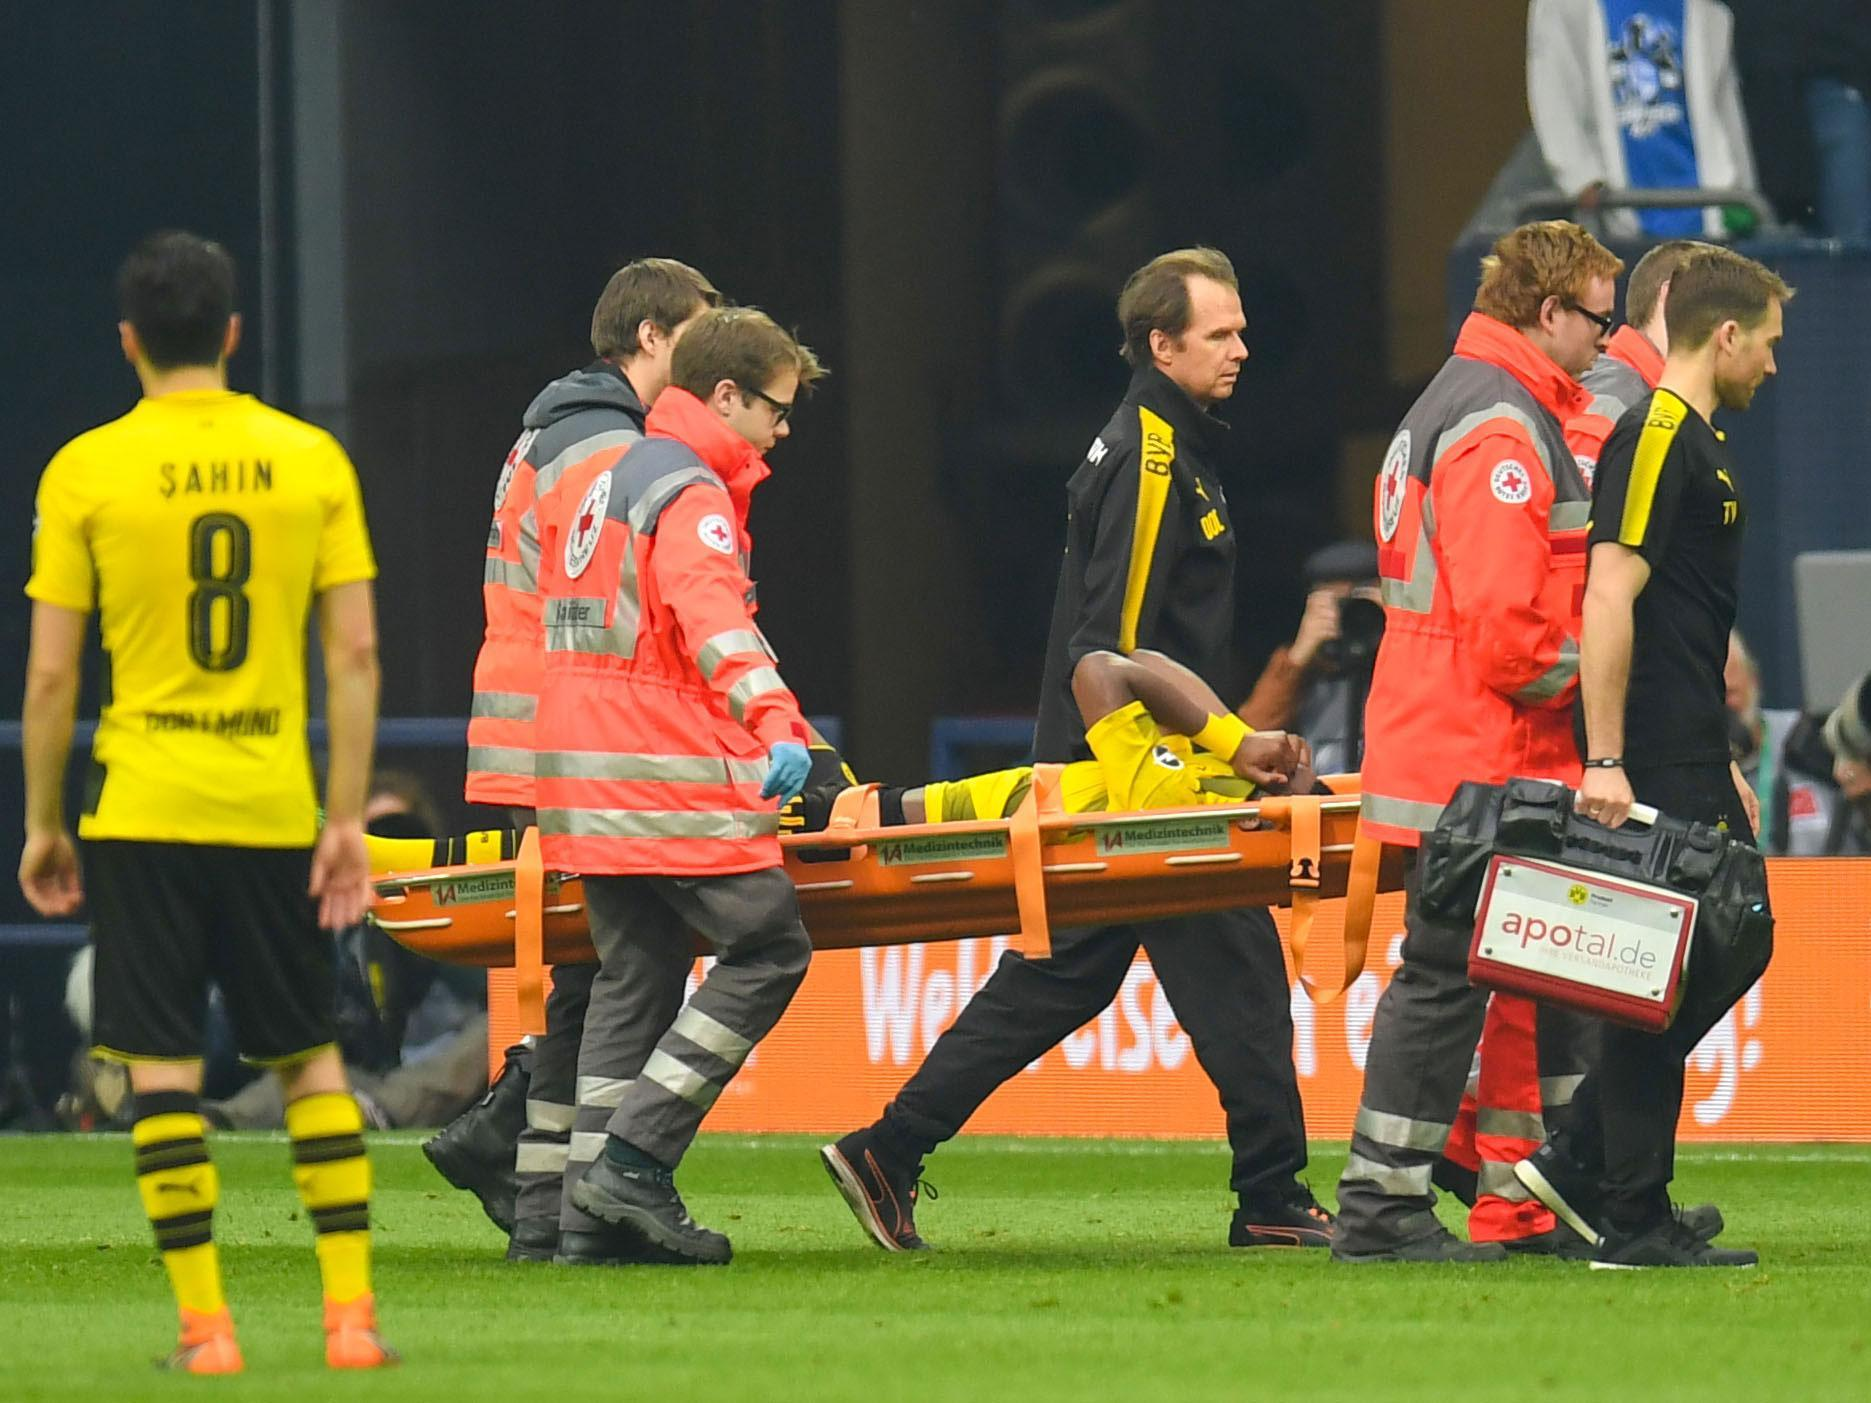 Michy Batshuayi's World Cup in doubt as Borussia Dortmund appear to confirm long-term injury